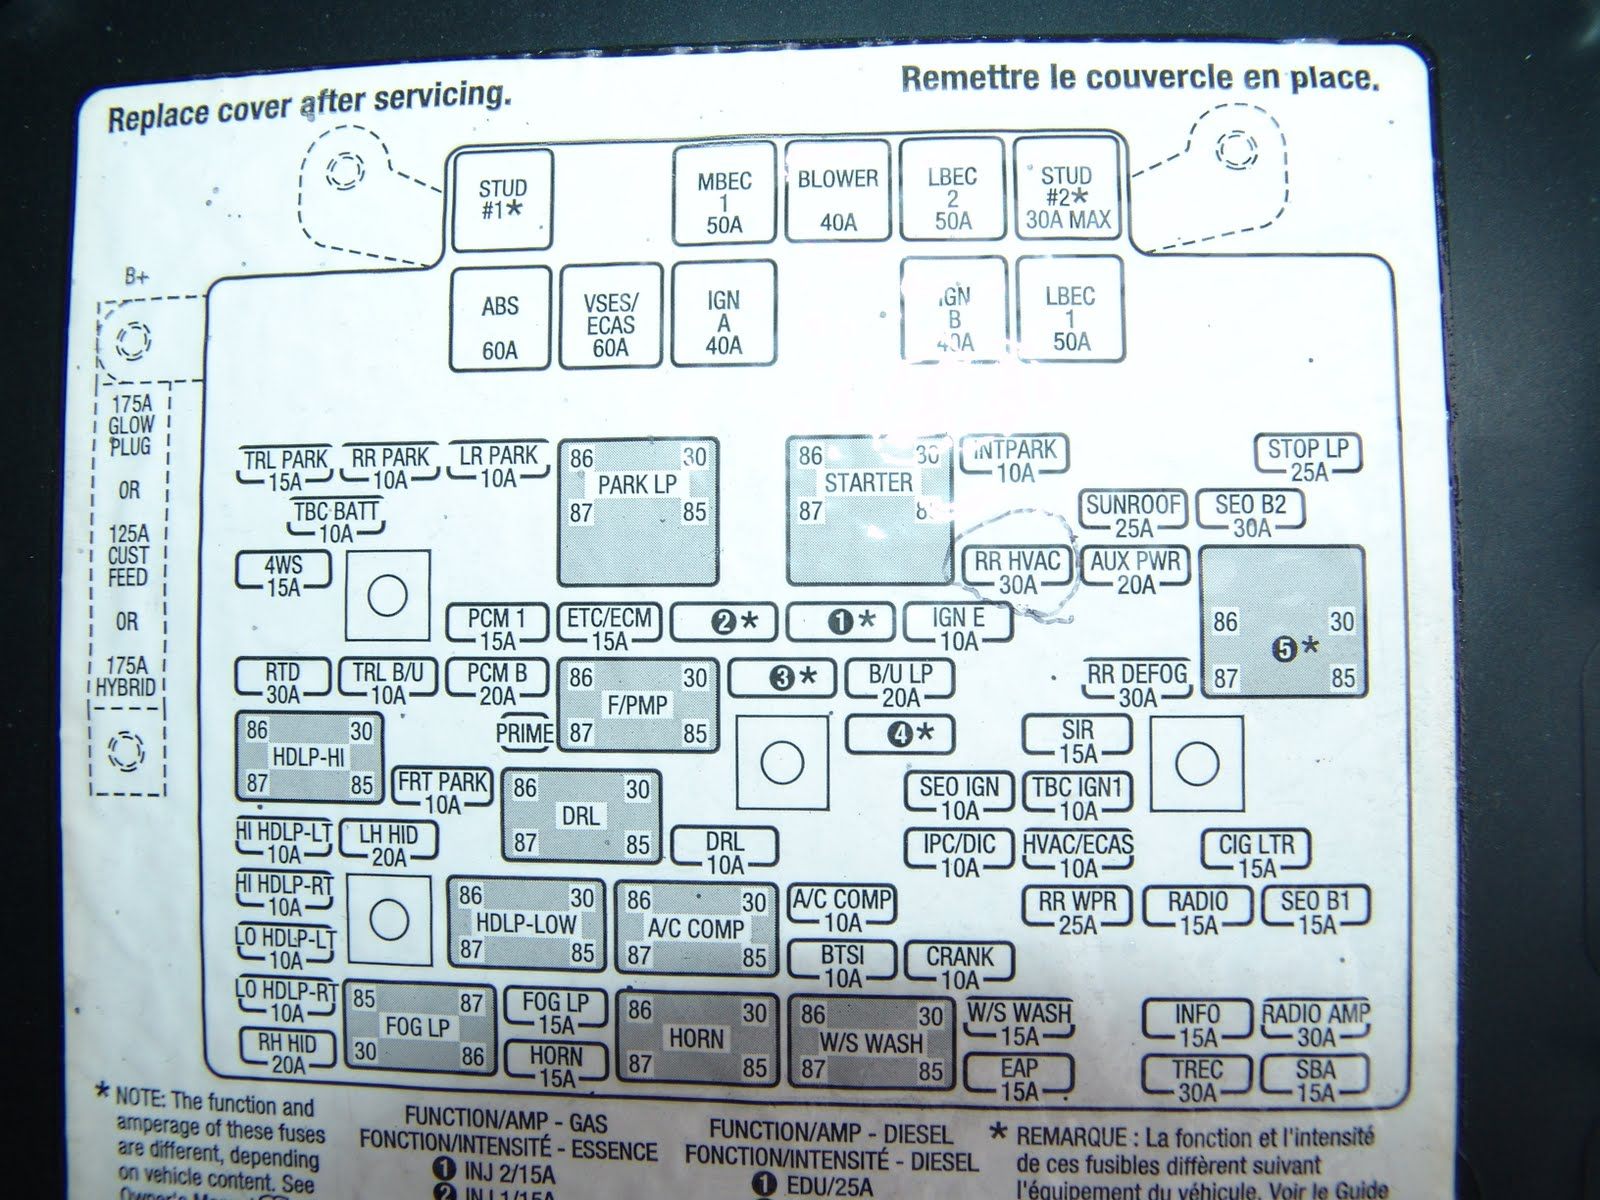 04 tahoe fuse box automotive wiring diagram library u2022 rh seigokanengland co uk 2004 chevrolet tahoe fuse box diagram 2004 chevrolet tahoe fuse box diagram